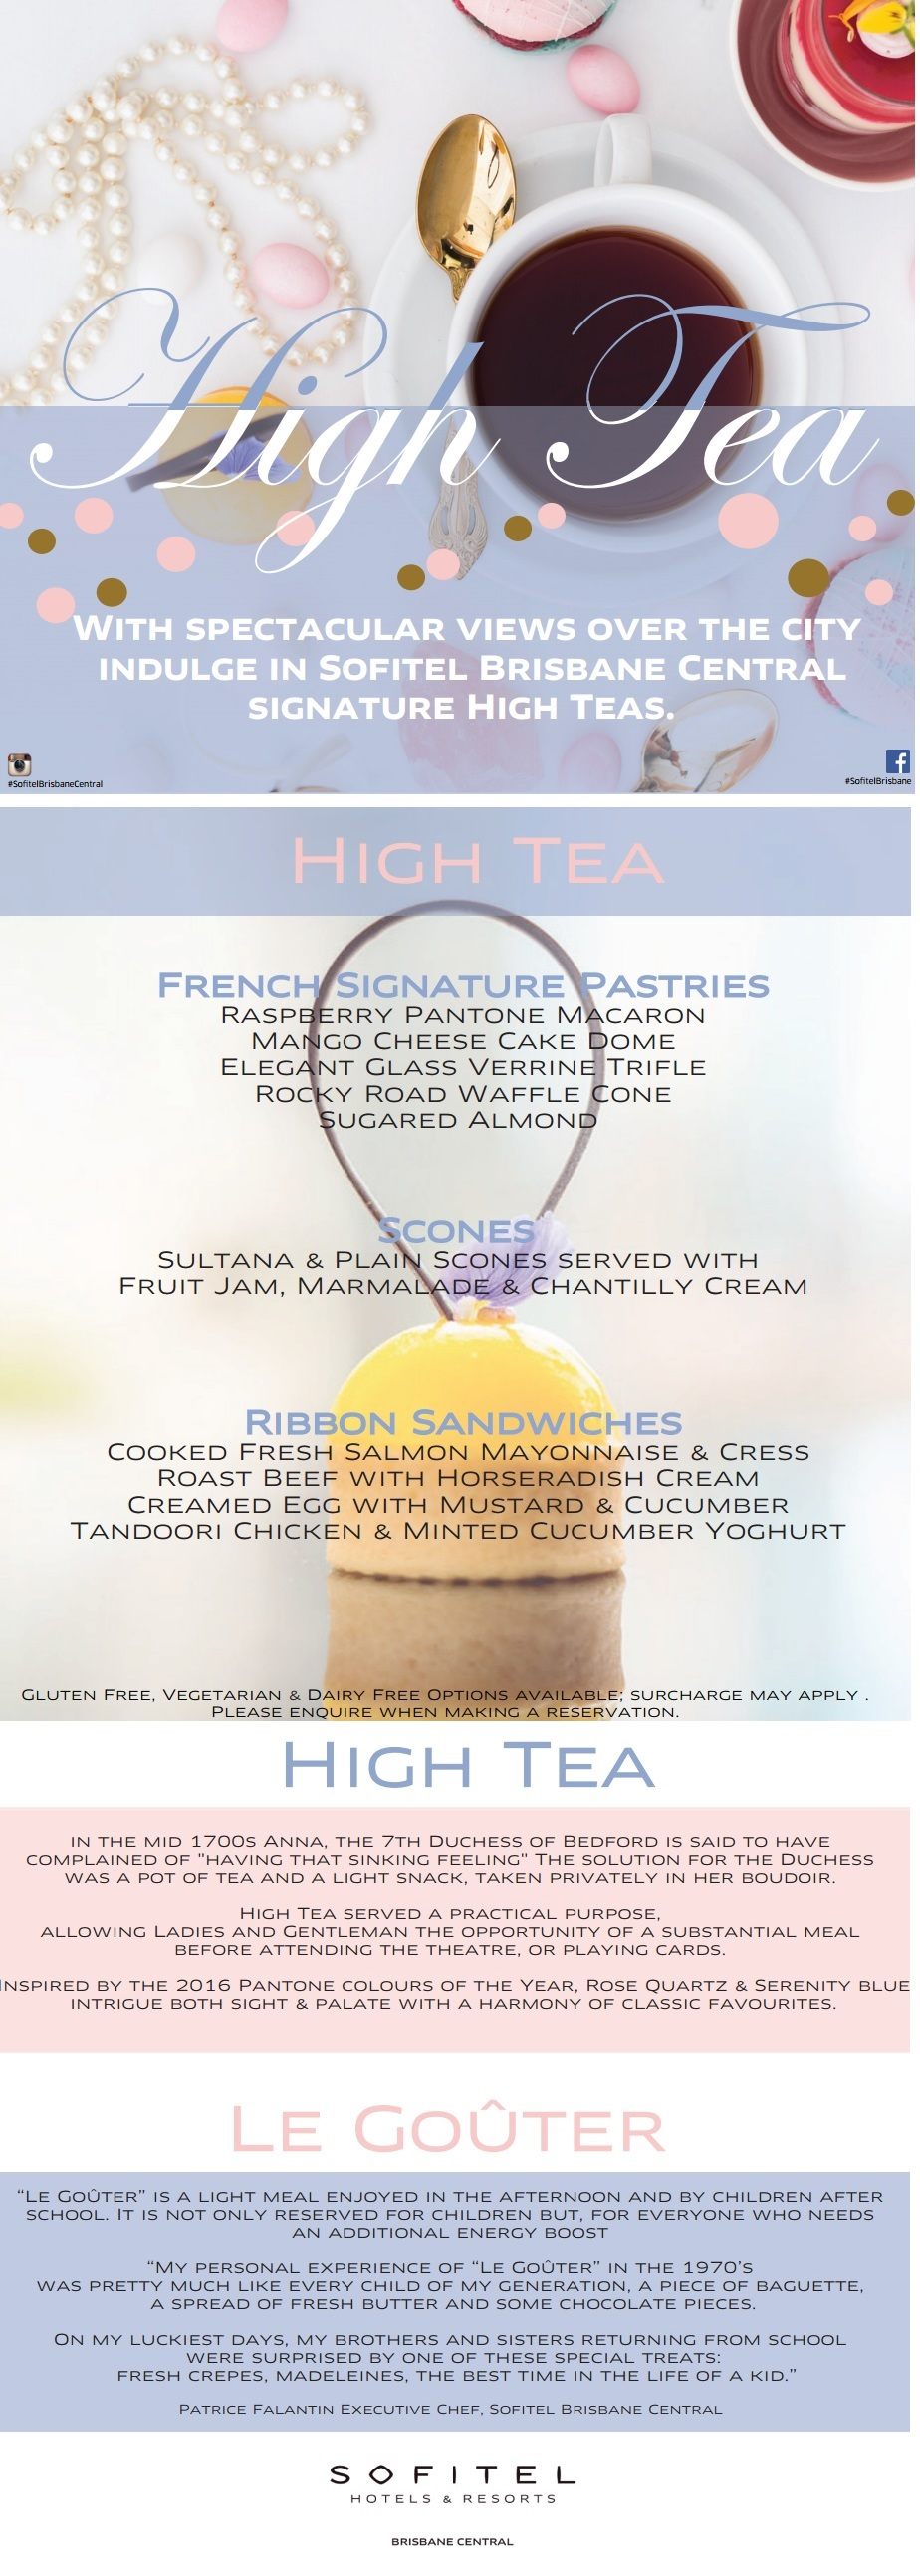 Sofitel_Brisbane High Tea_Miss Foodie (Flyer)